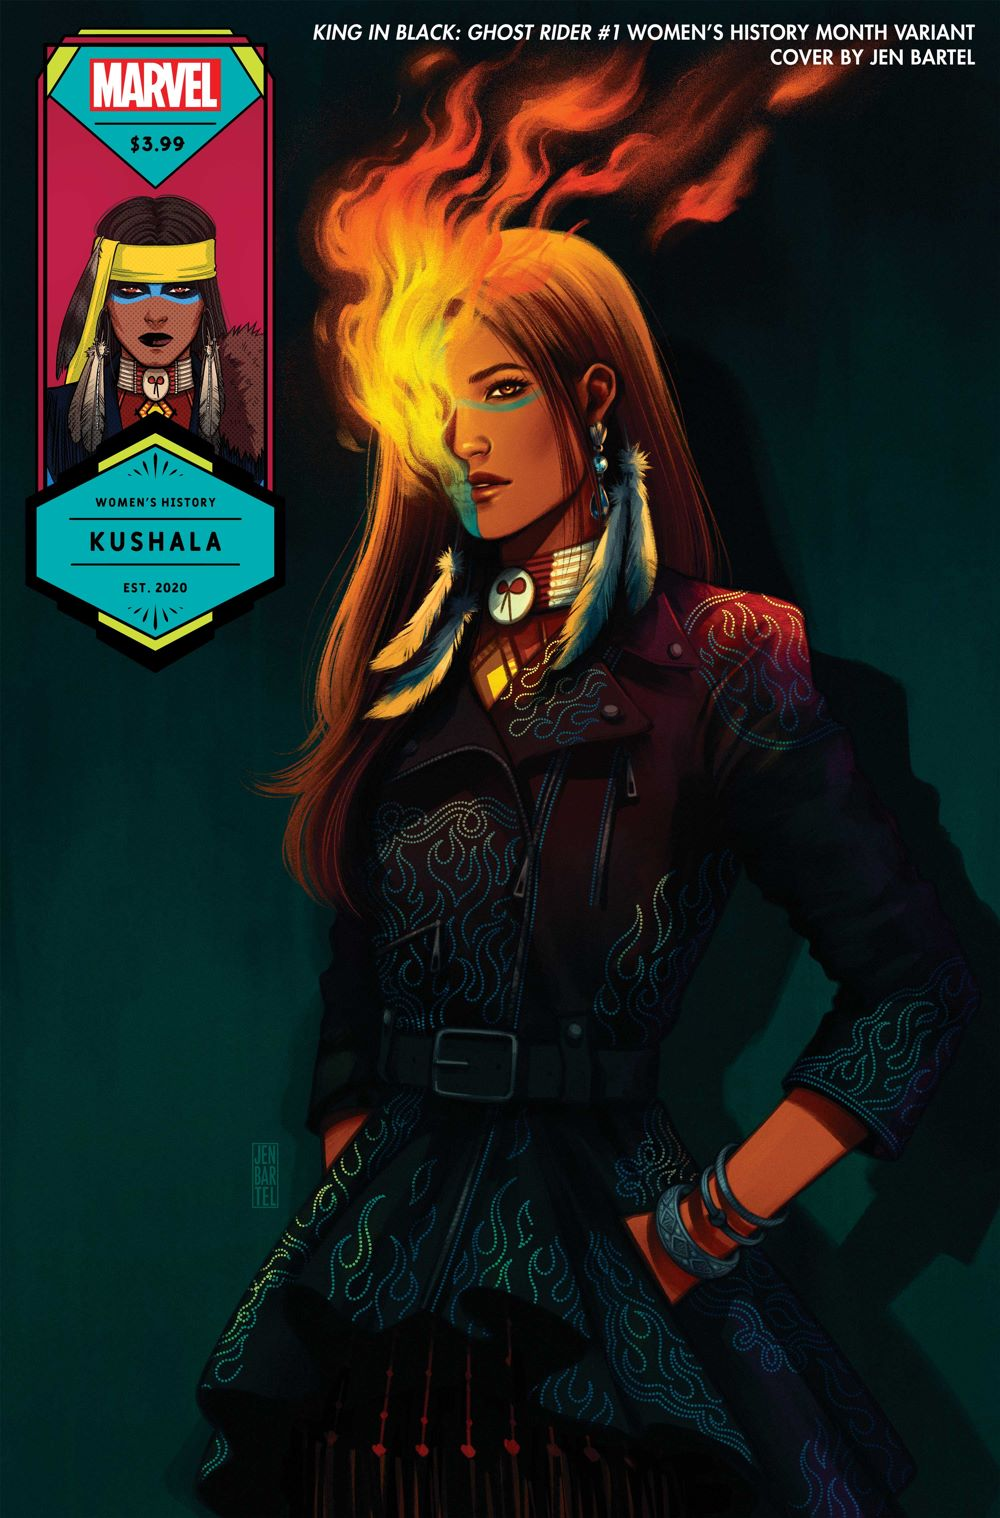 GHOSTRKIB2021001_Bartel_Womens-History-Month Next set of Marvel WOMEN'S HISTORY MONTH variant covers revealed